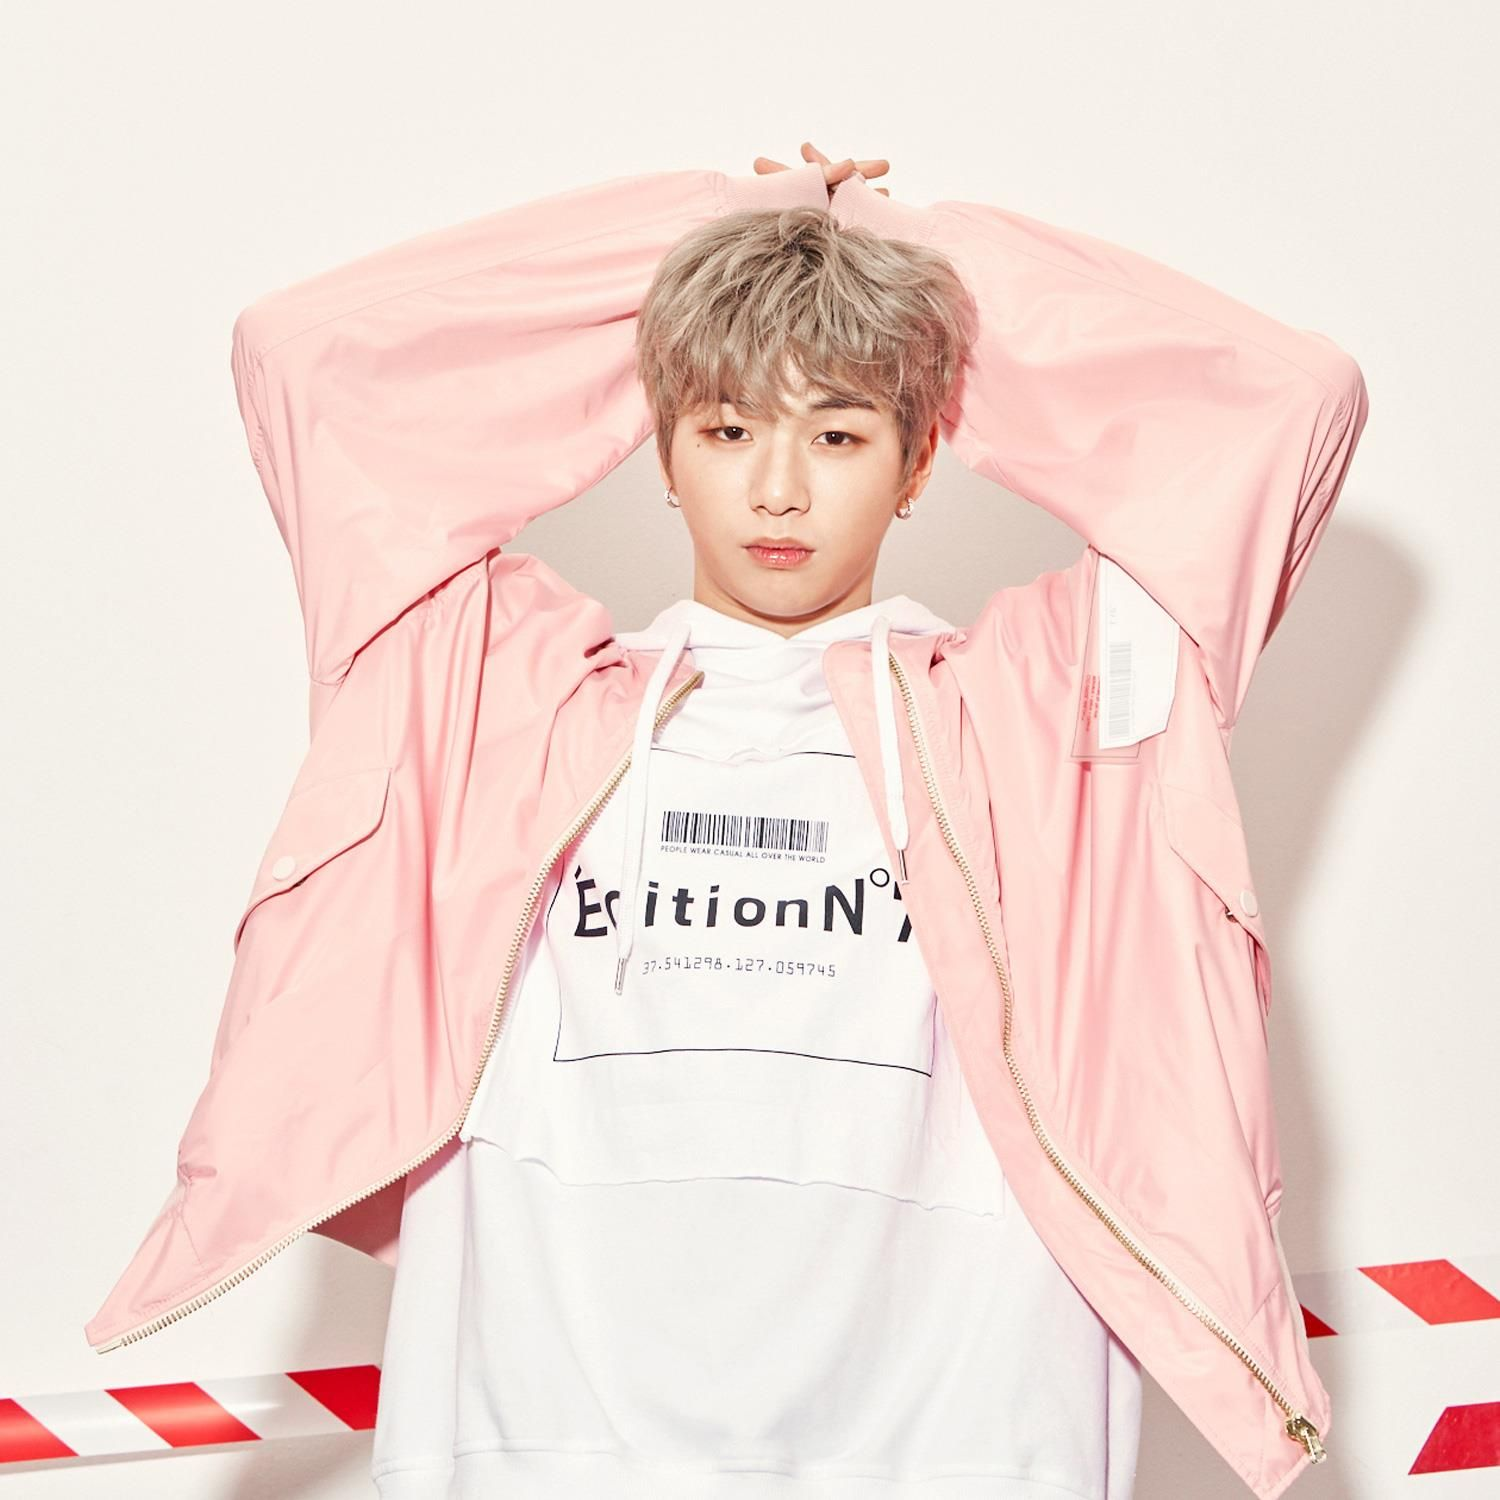 wanna one, wanna one profile, wanna one member, wanna one kang daniel, wanna one kang daniel lap, kang daniel lap, kang daniel lap korea, kang daniel lap photoshoot, kang daniel 2018 lap, kang daniel 2018, kang daniel 2018 photoshoot #kangdaniel